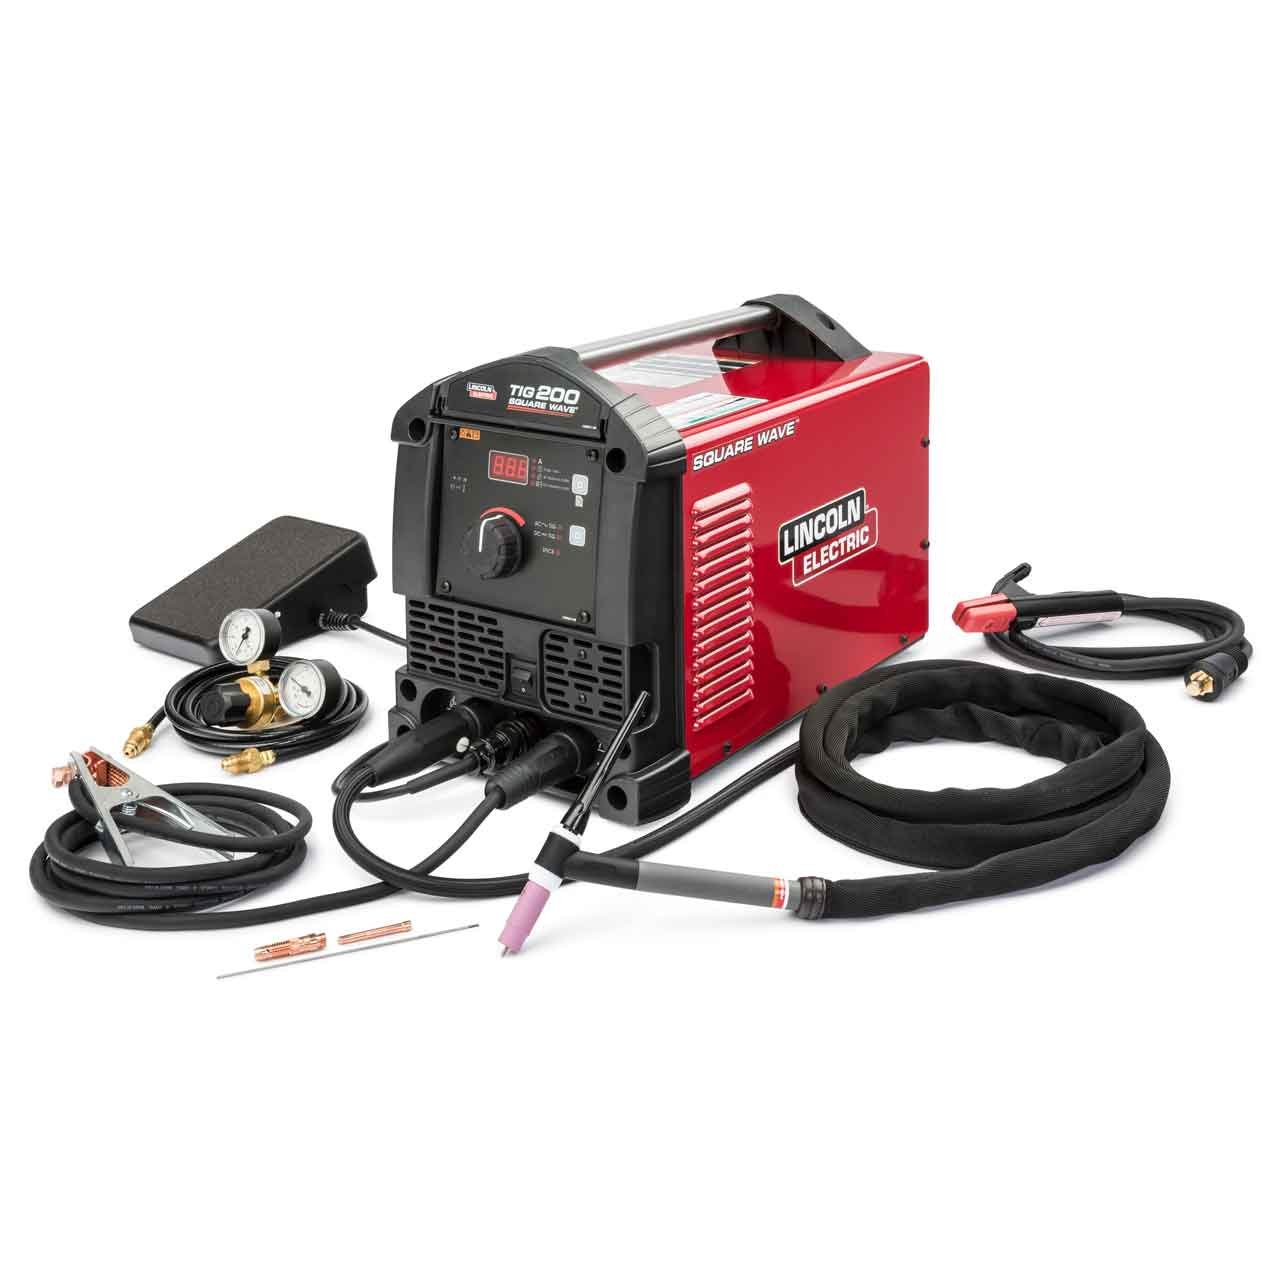 3. Lincoln Electric Square Wave TIG 200 TIG Welder, K5126-1